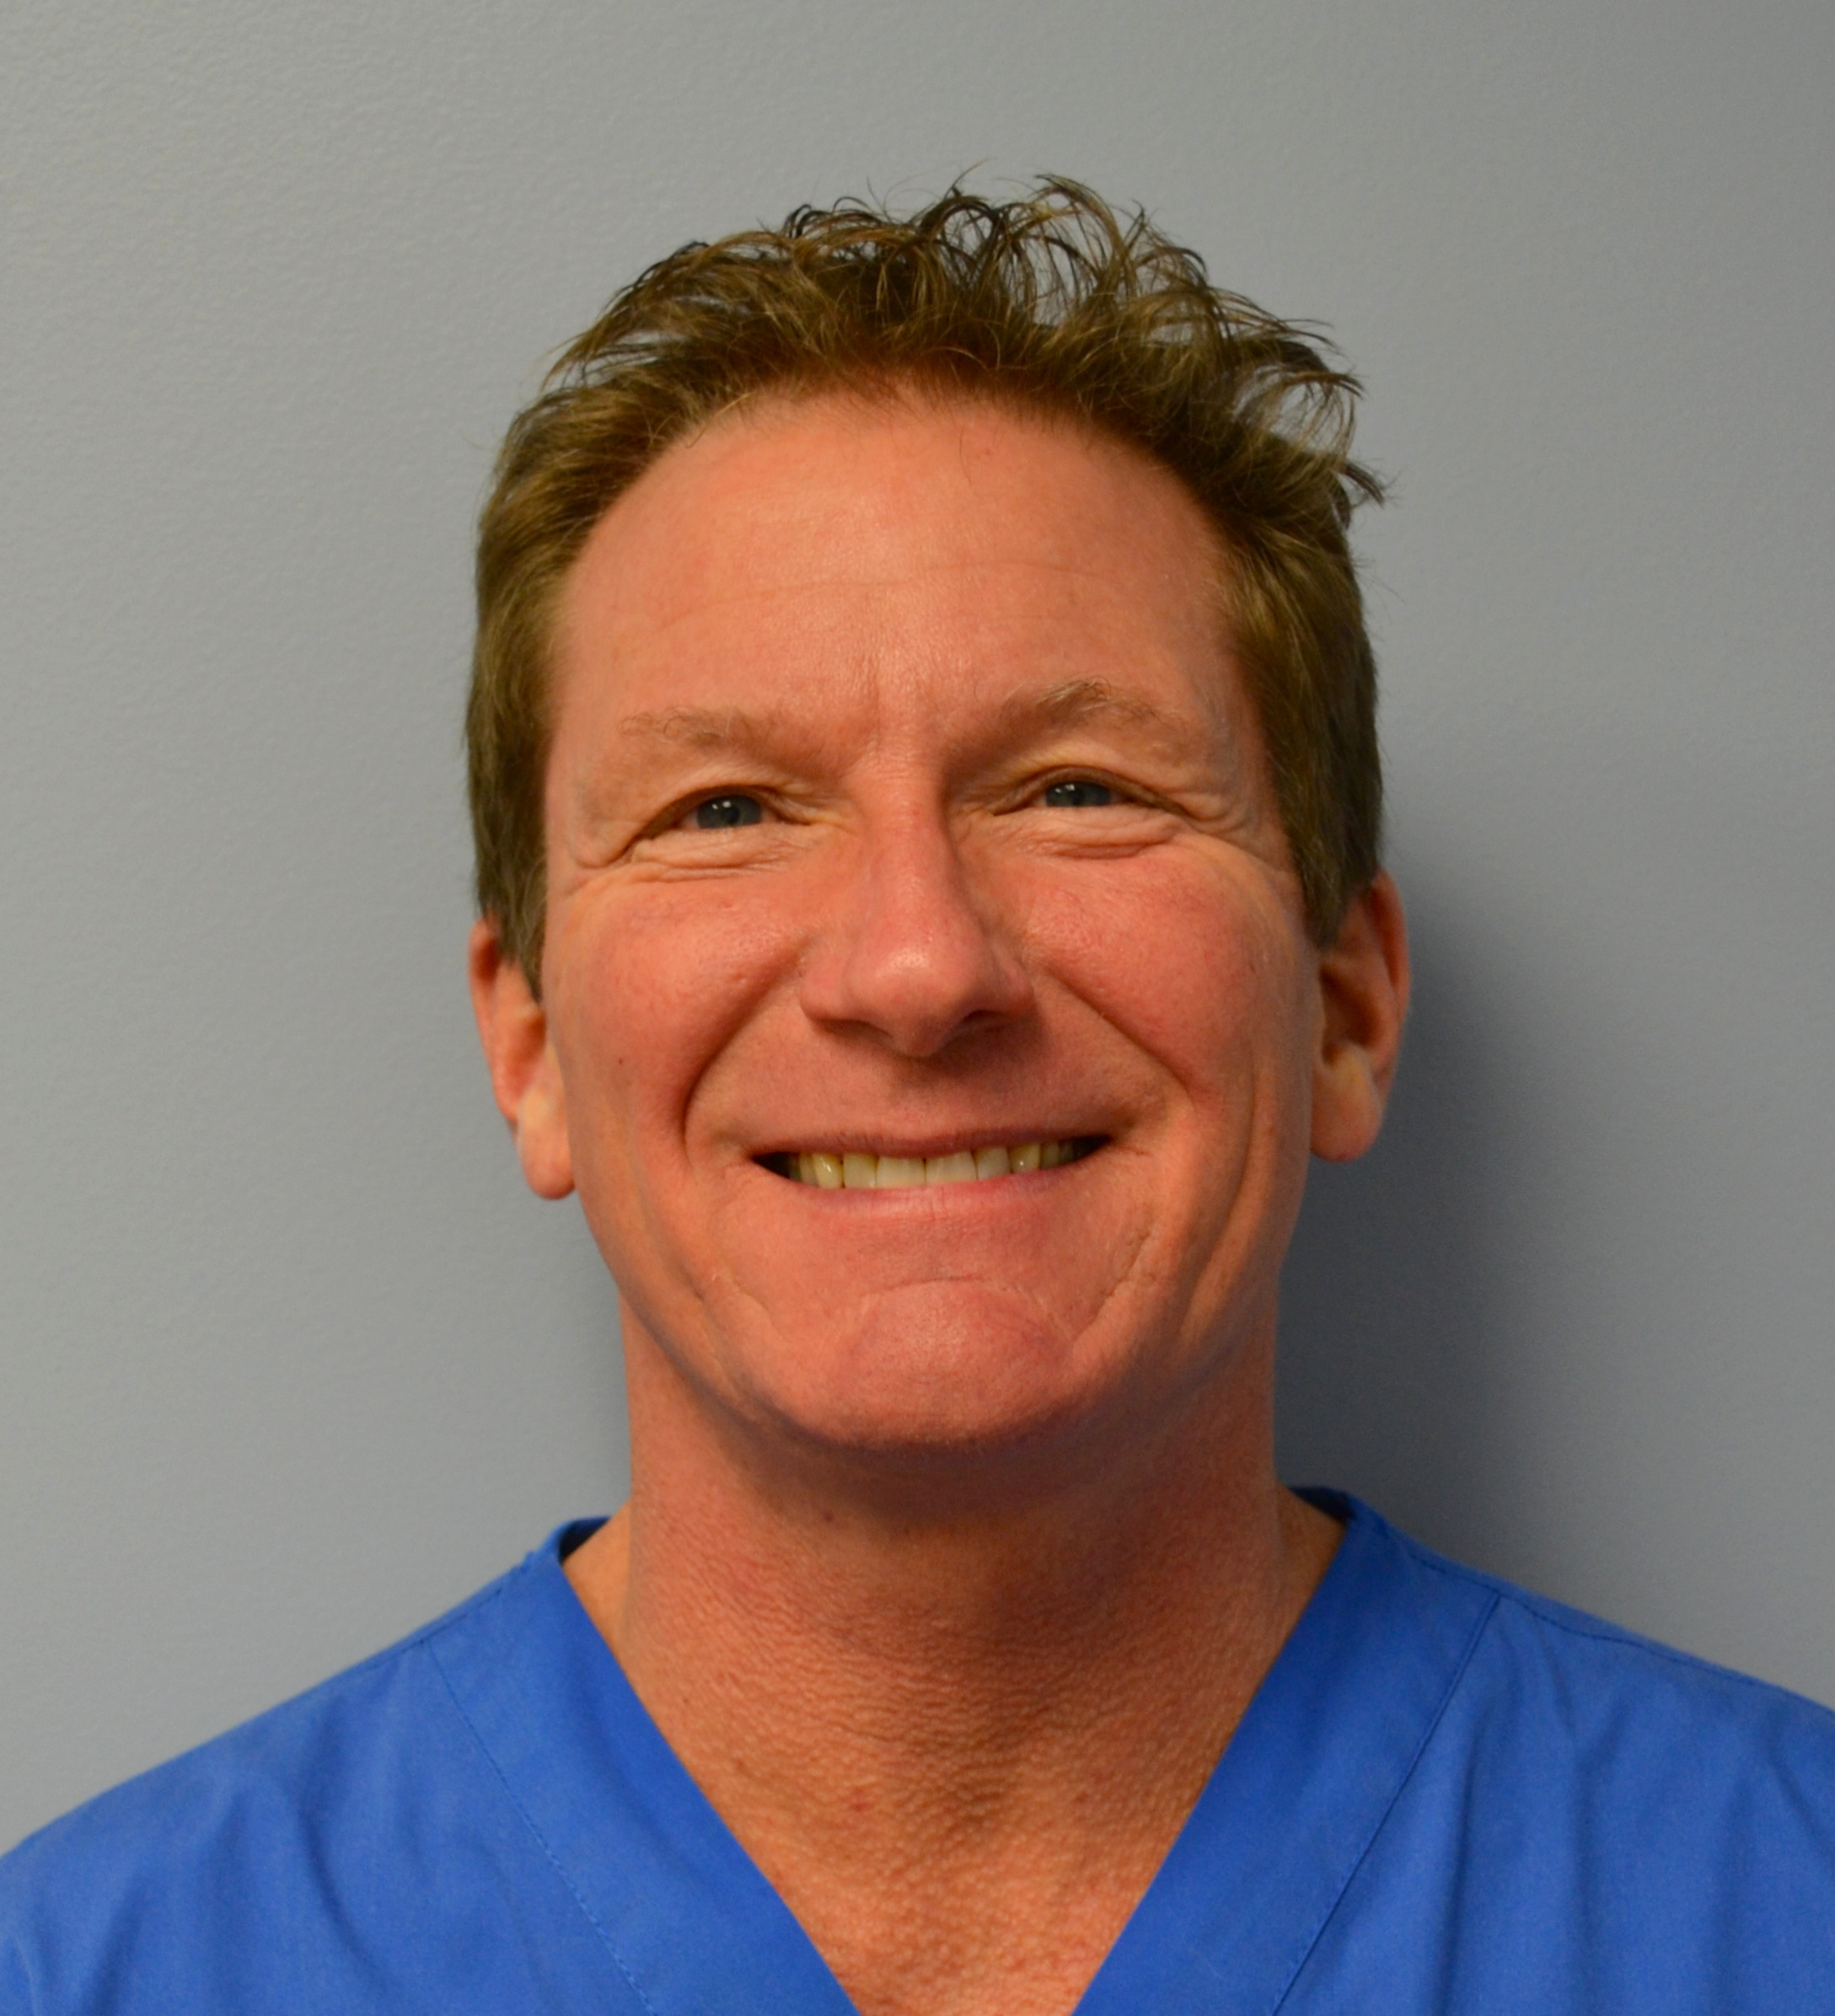 Article by: Dr. William Leicht - DDS